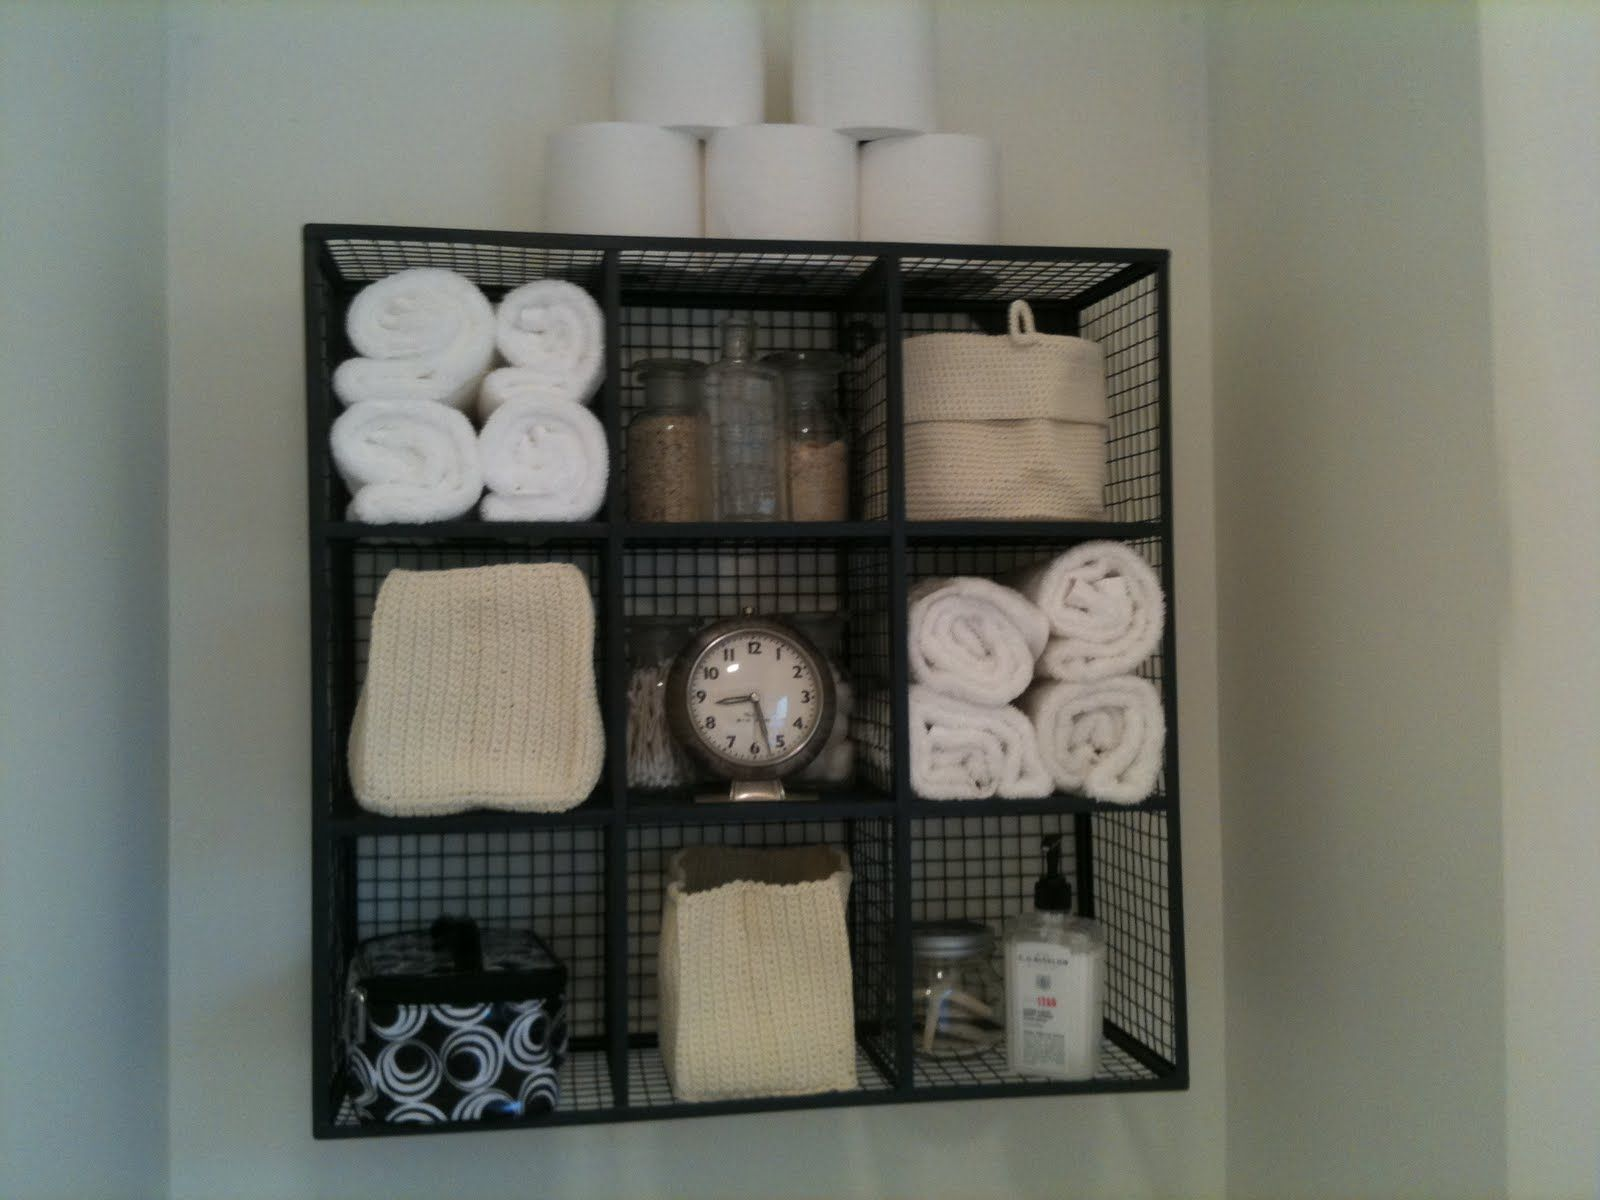 Bathroom wall storage baskets - 17 Brilliant Over The Toilet Storage Ideas Bathroom Shelves